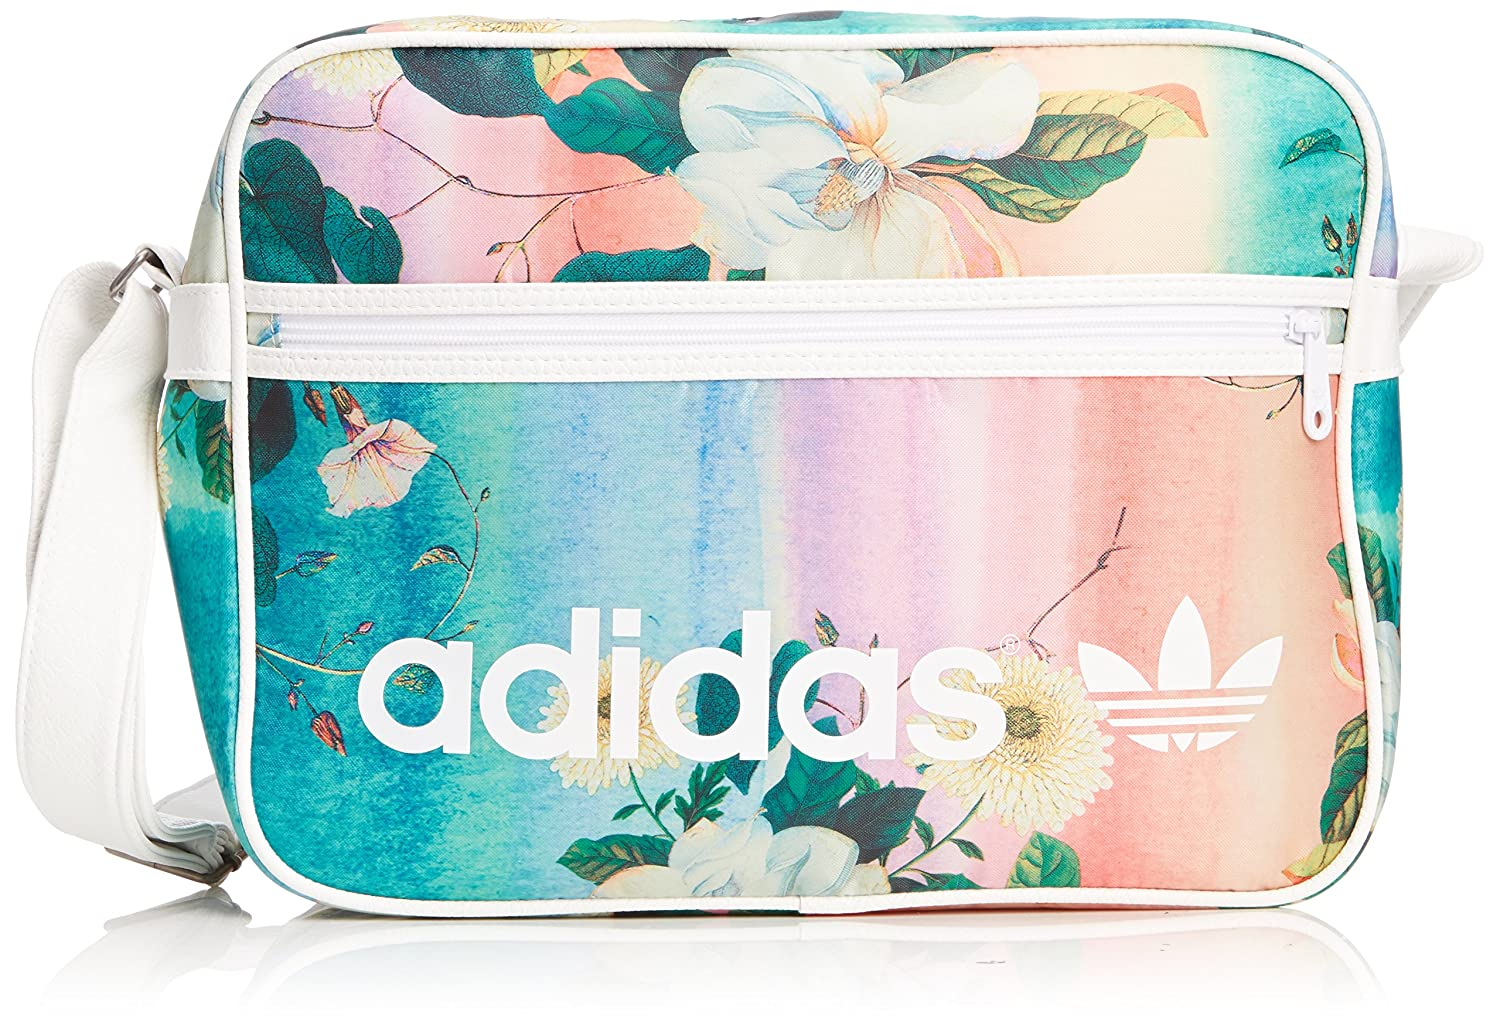 promo code 43511 e498f adidas Women s Airliner Floralina Shoulder Bag - Multicolor White  Amazon.co.uk   Sports   Outdoors